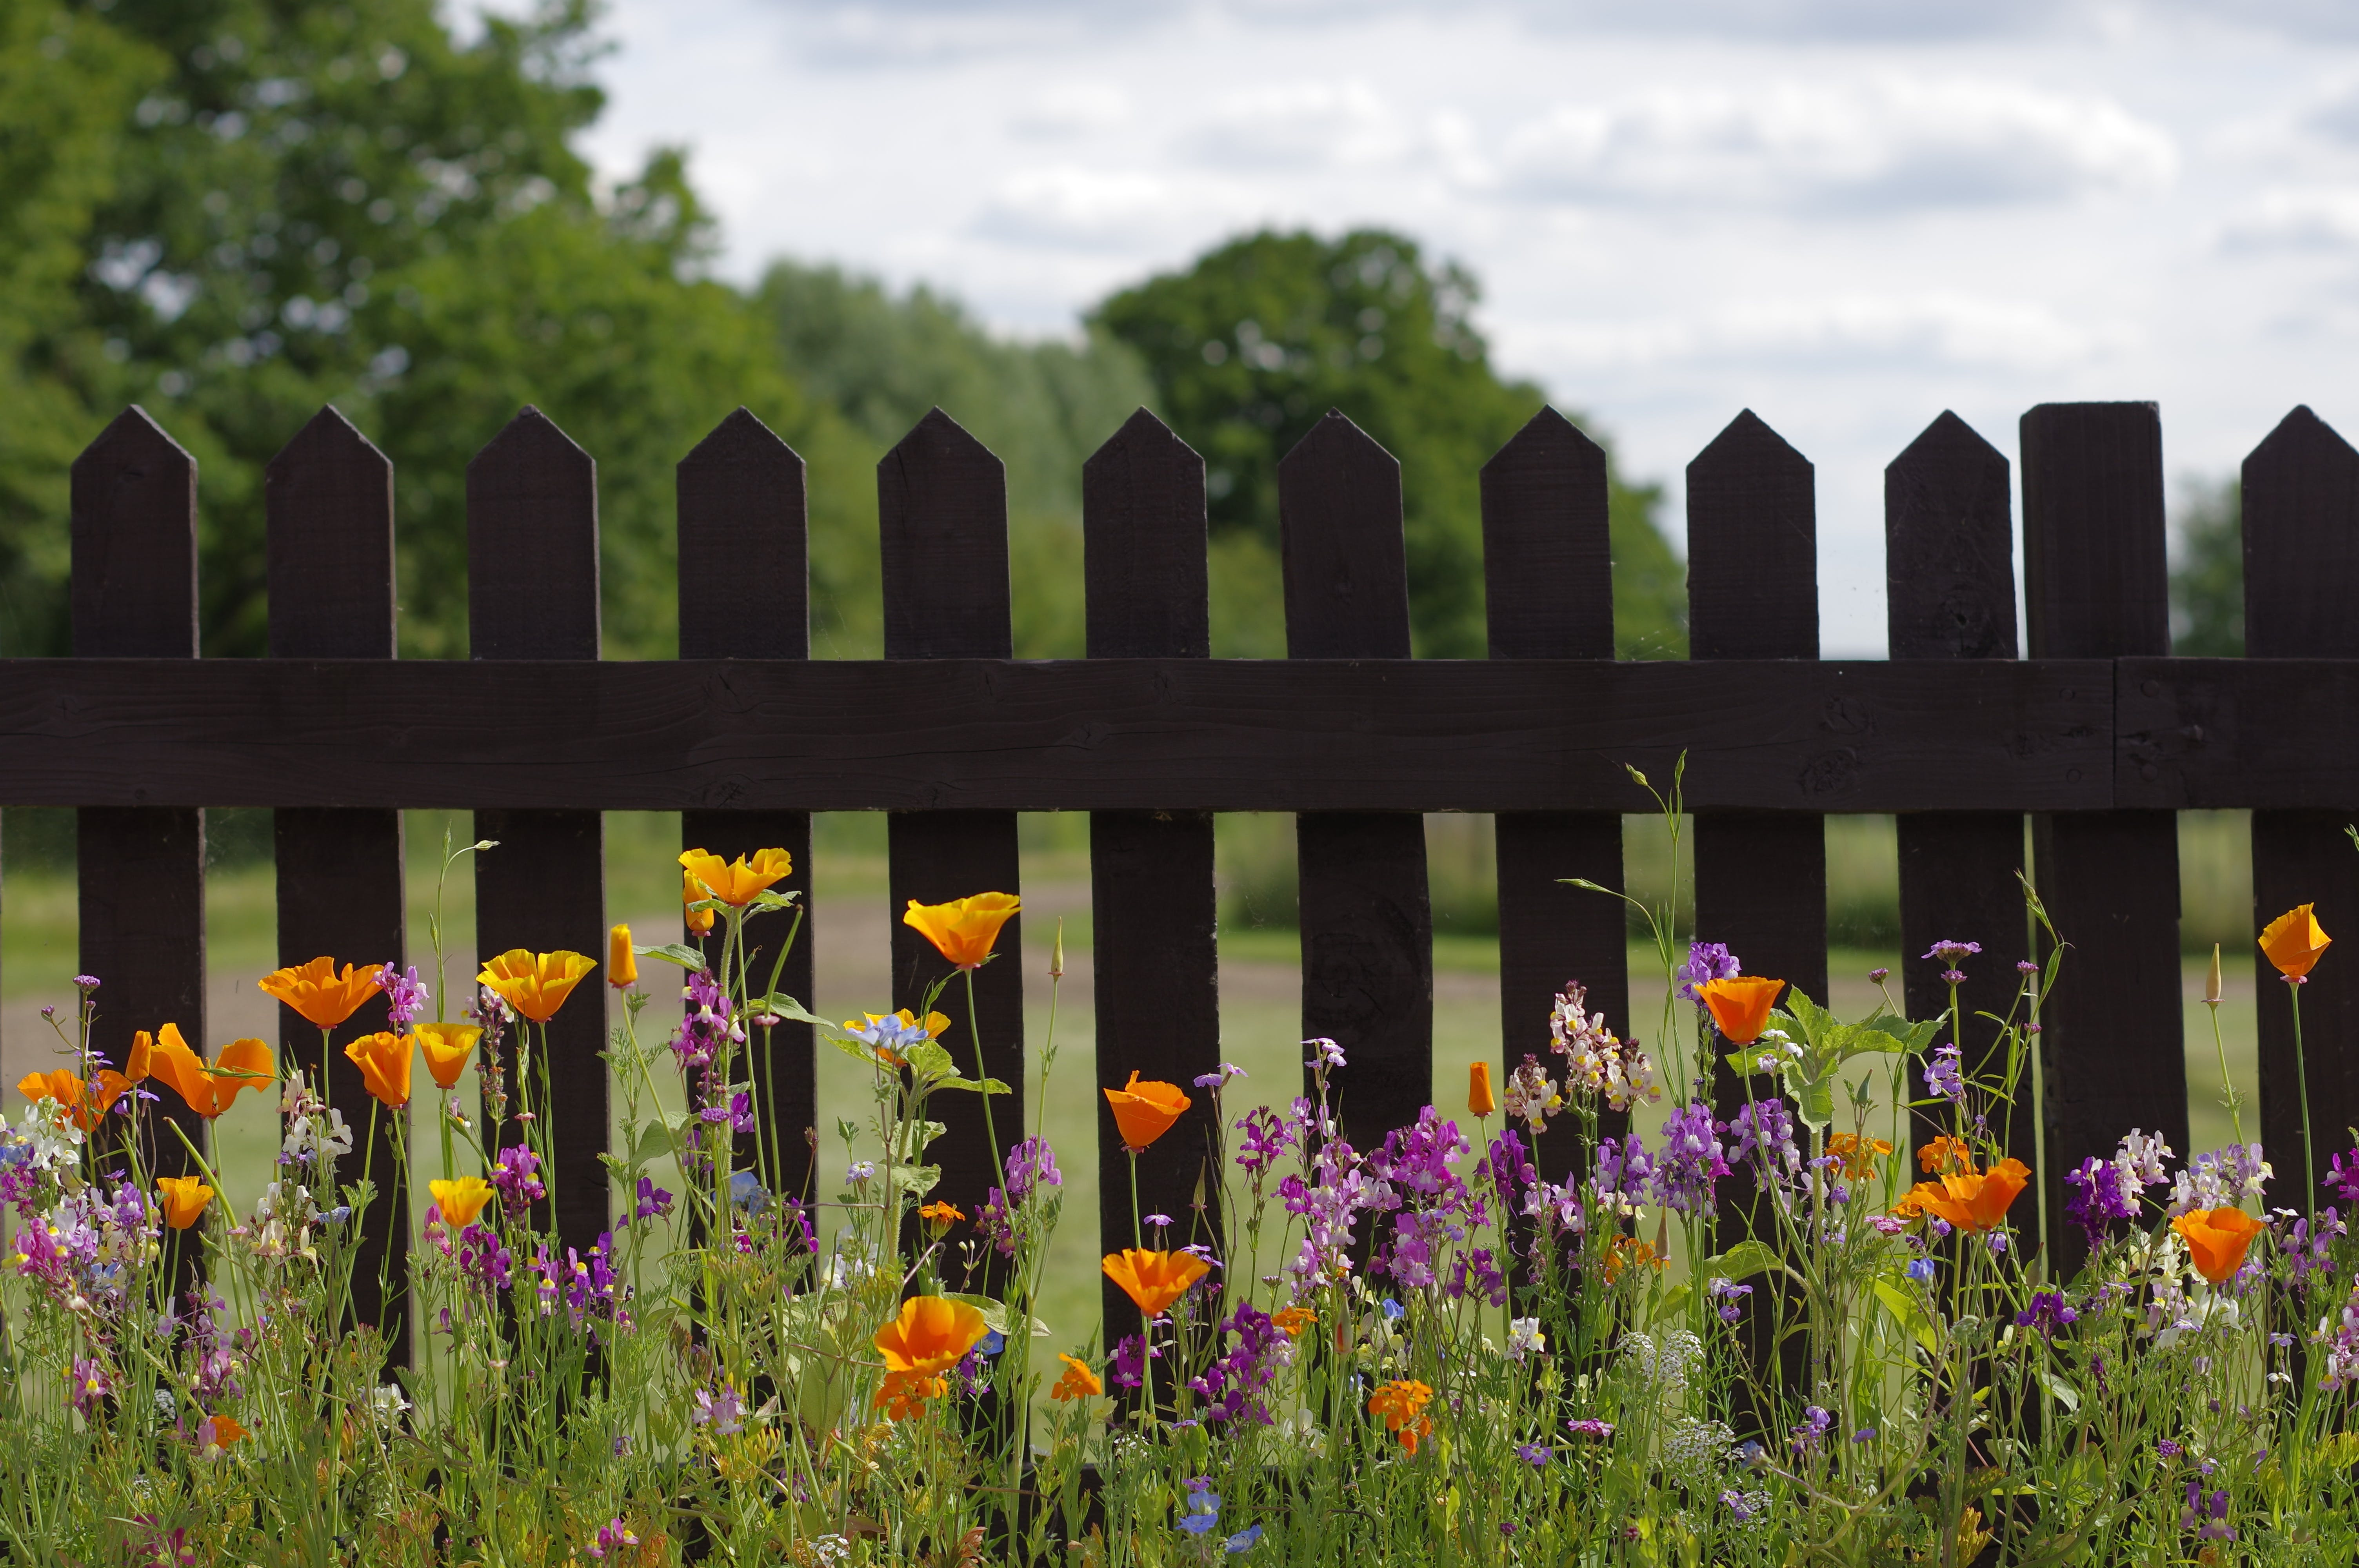 Free stock photo of beautiful flowers, fence, spring flowers, wild flowers